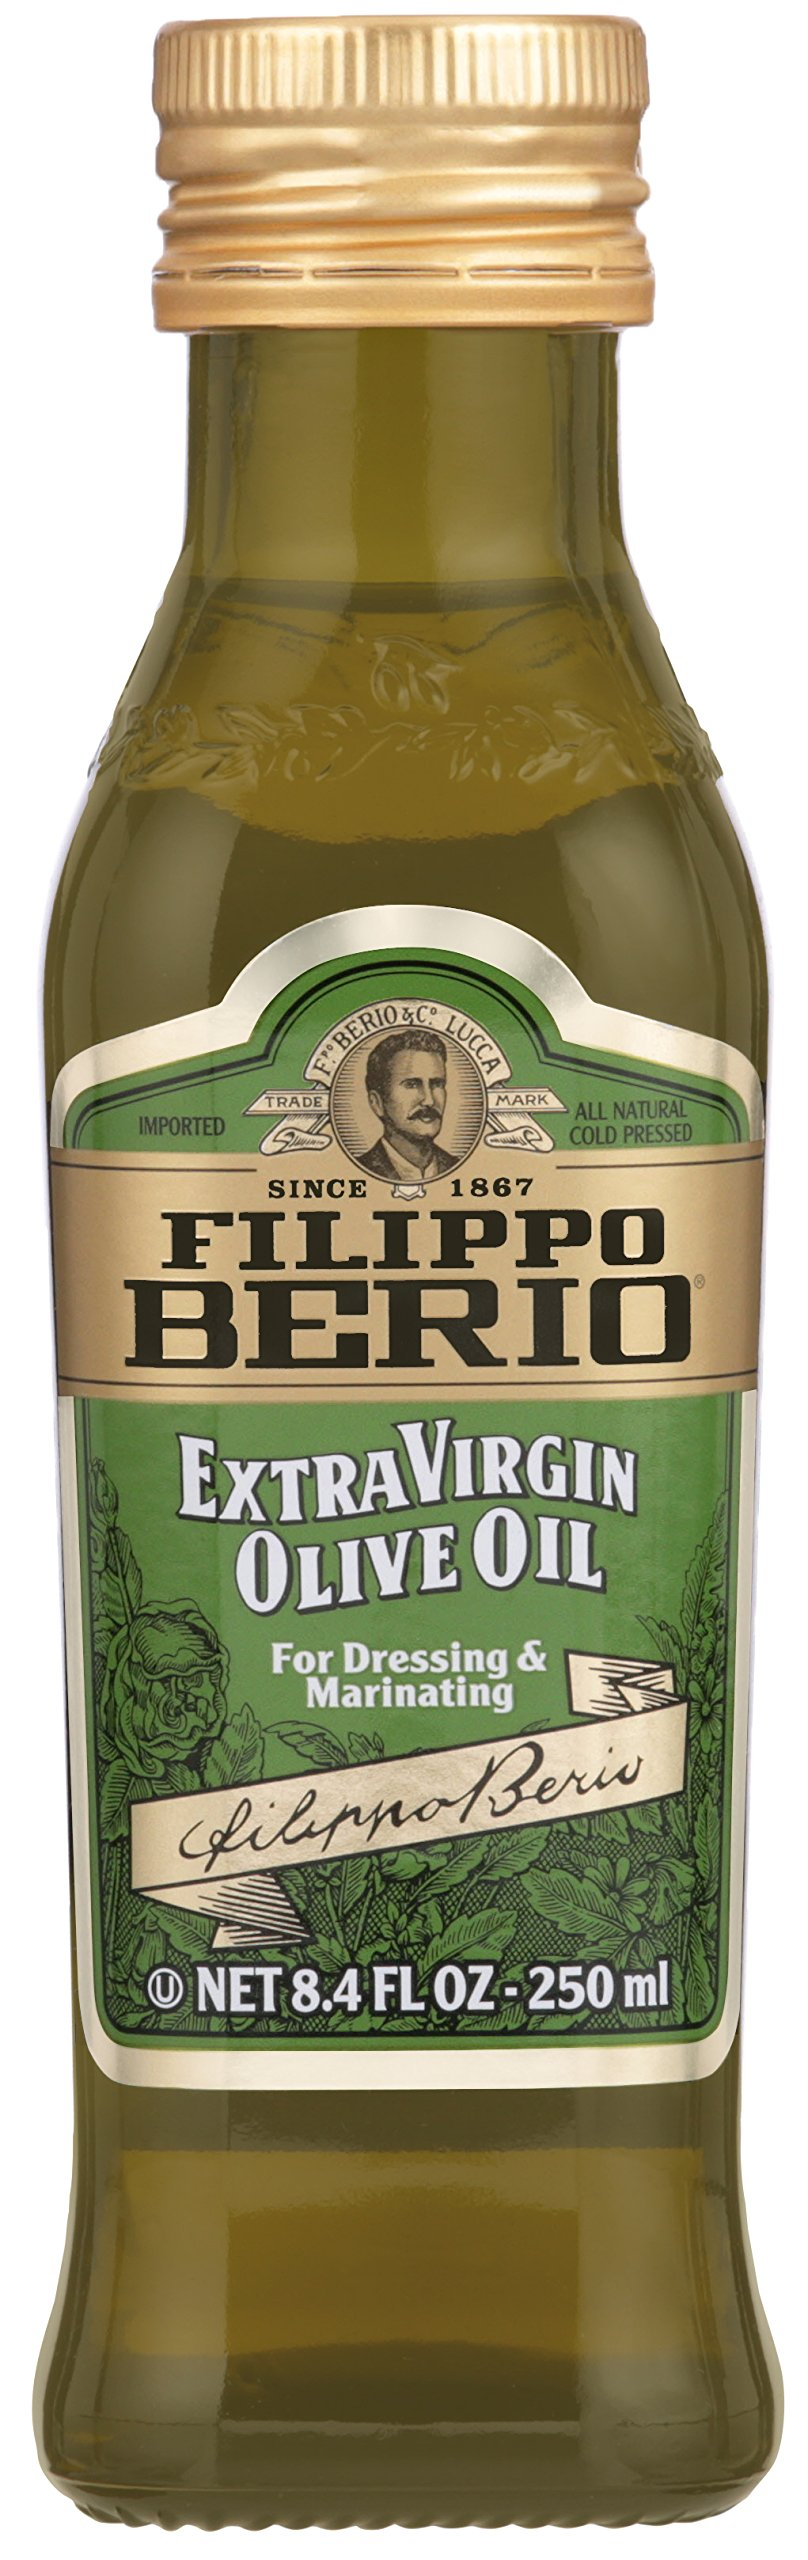 Filippo Berio Extra Virgin Olive Oil, 8.4 Ounce by Filippo Berio